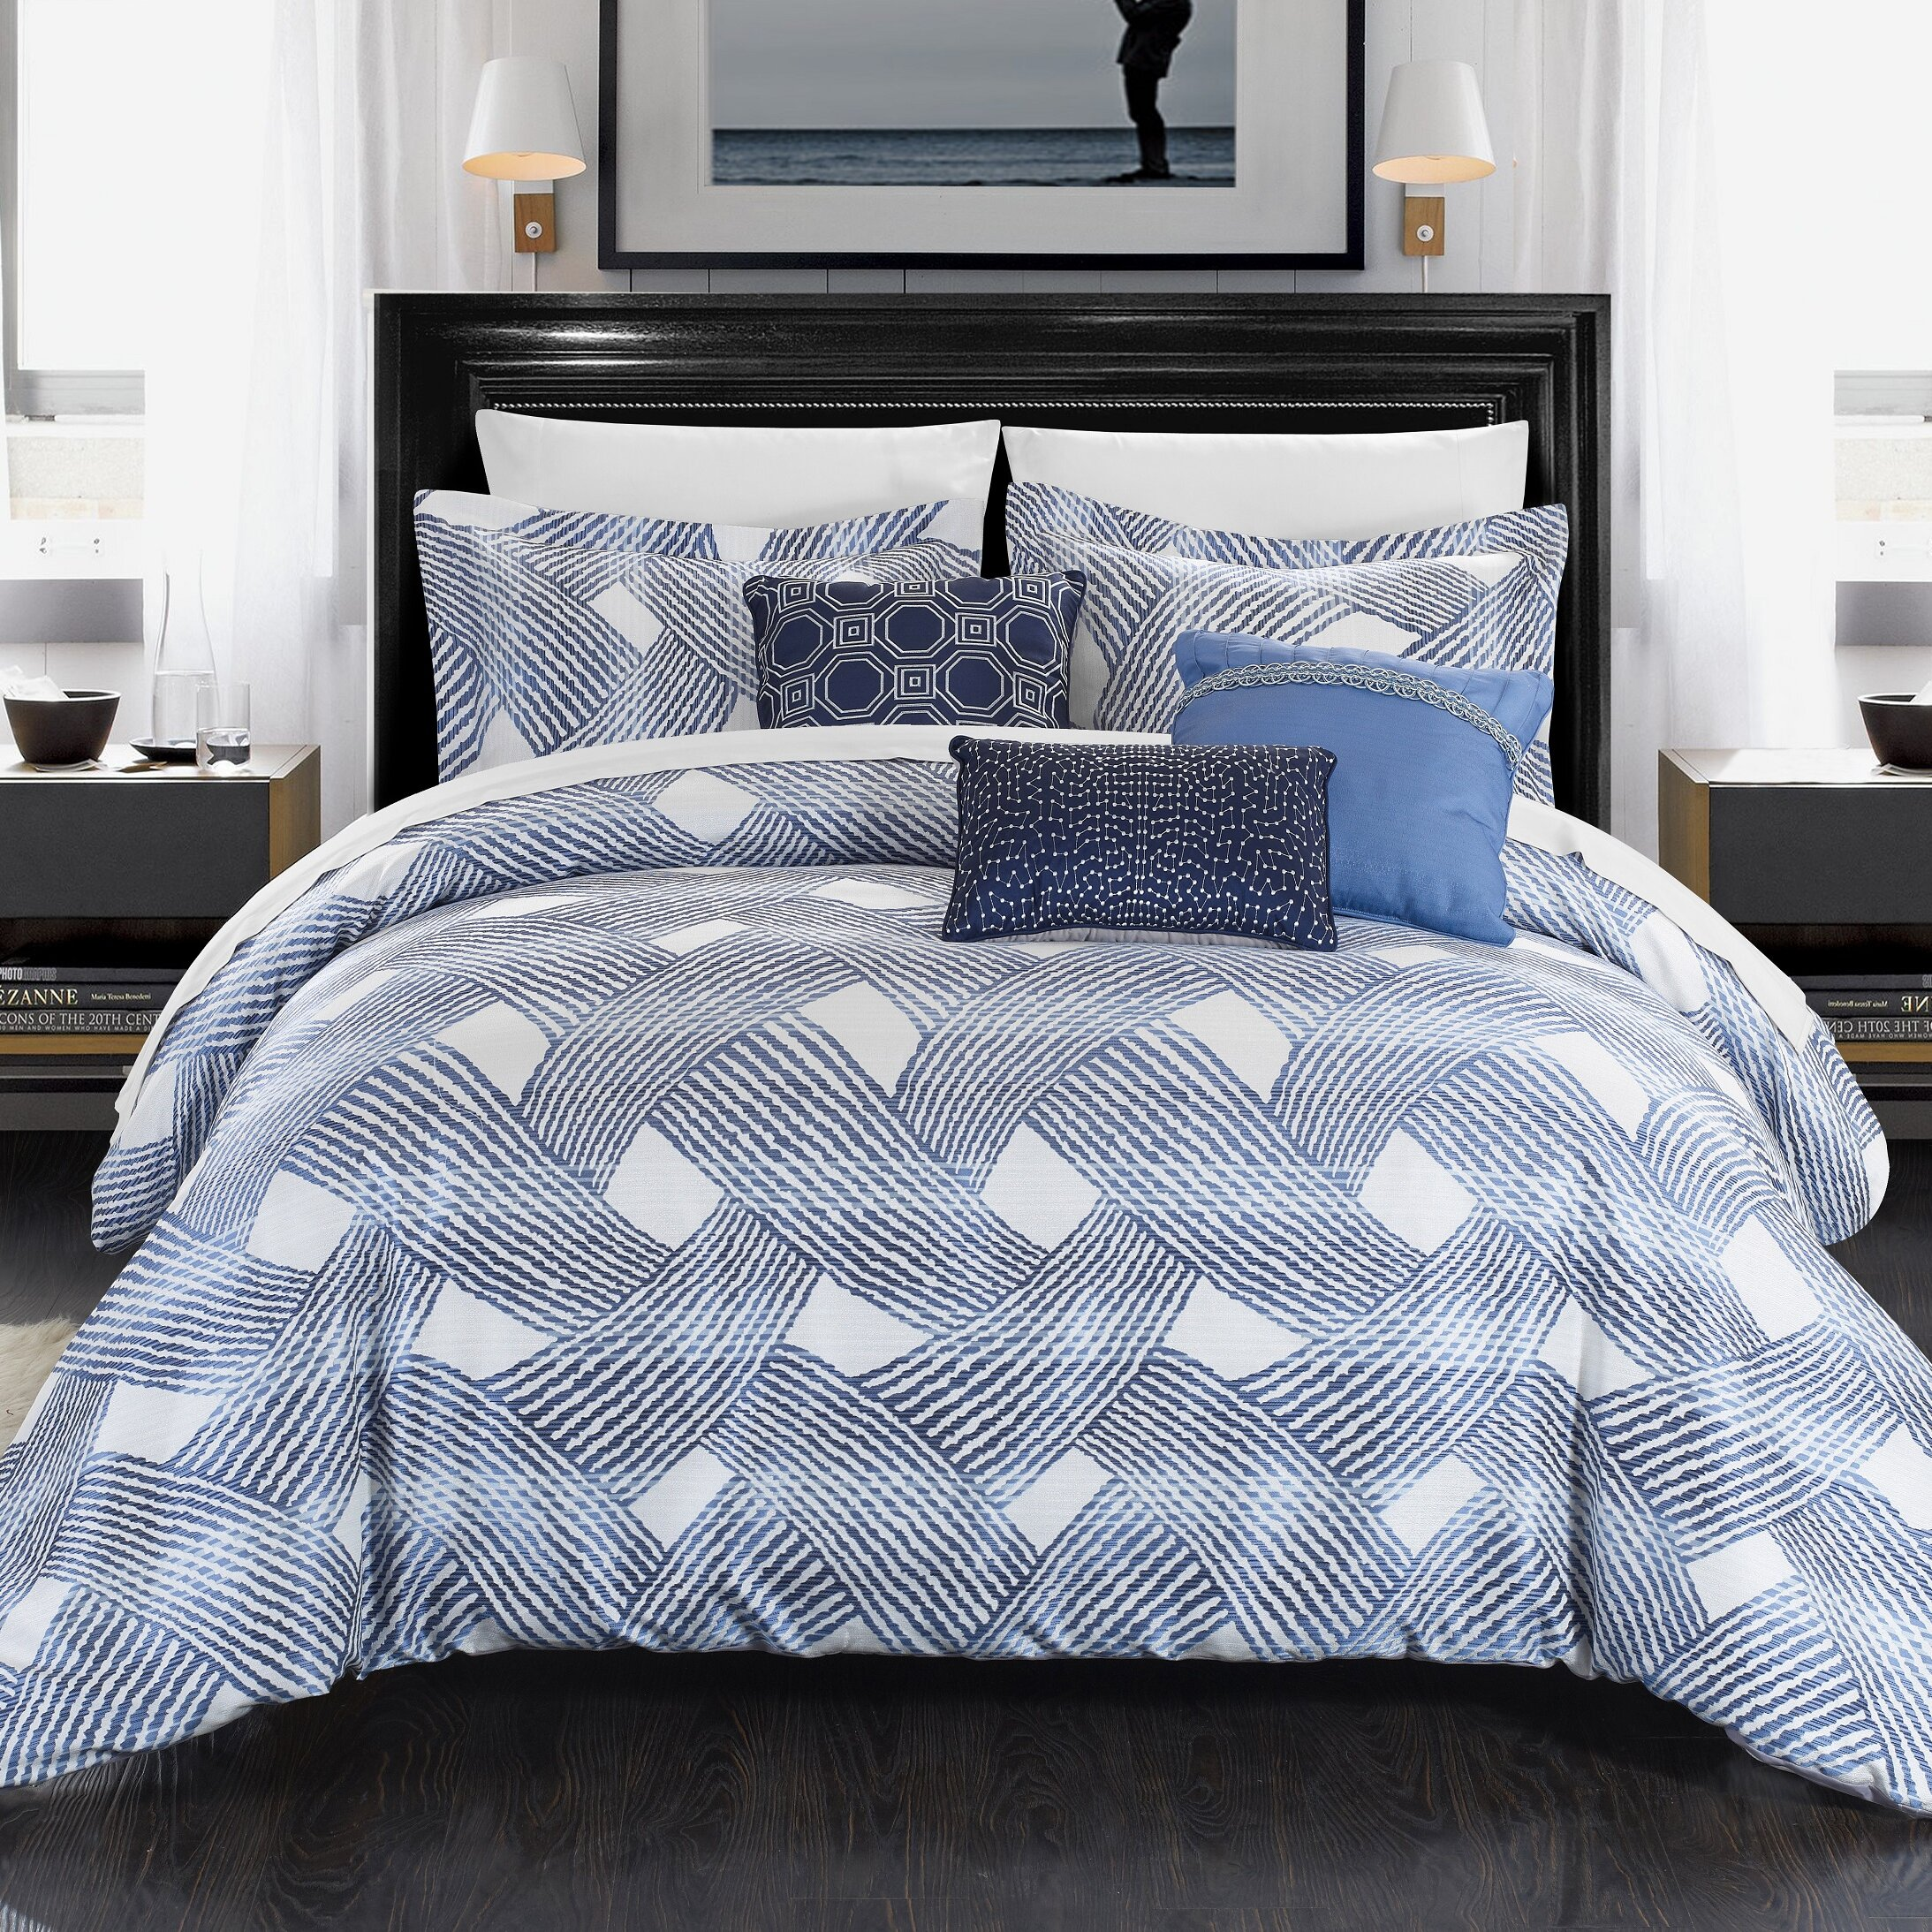 Chic Home Fiorella 6 Piece Comforter Set & Reviews